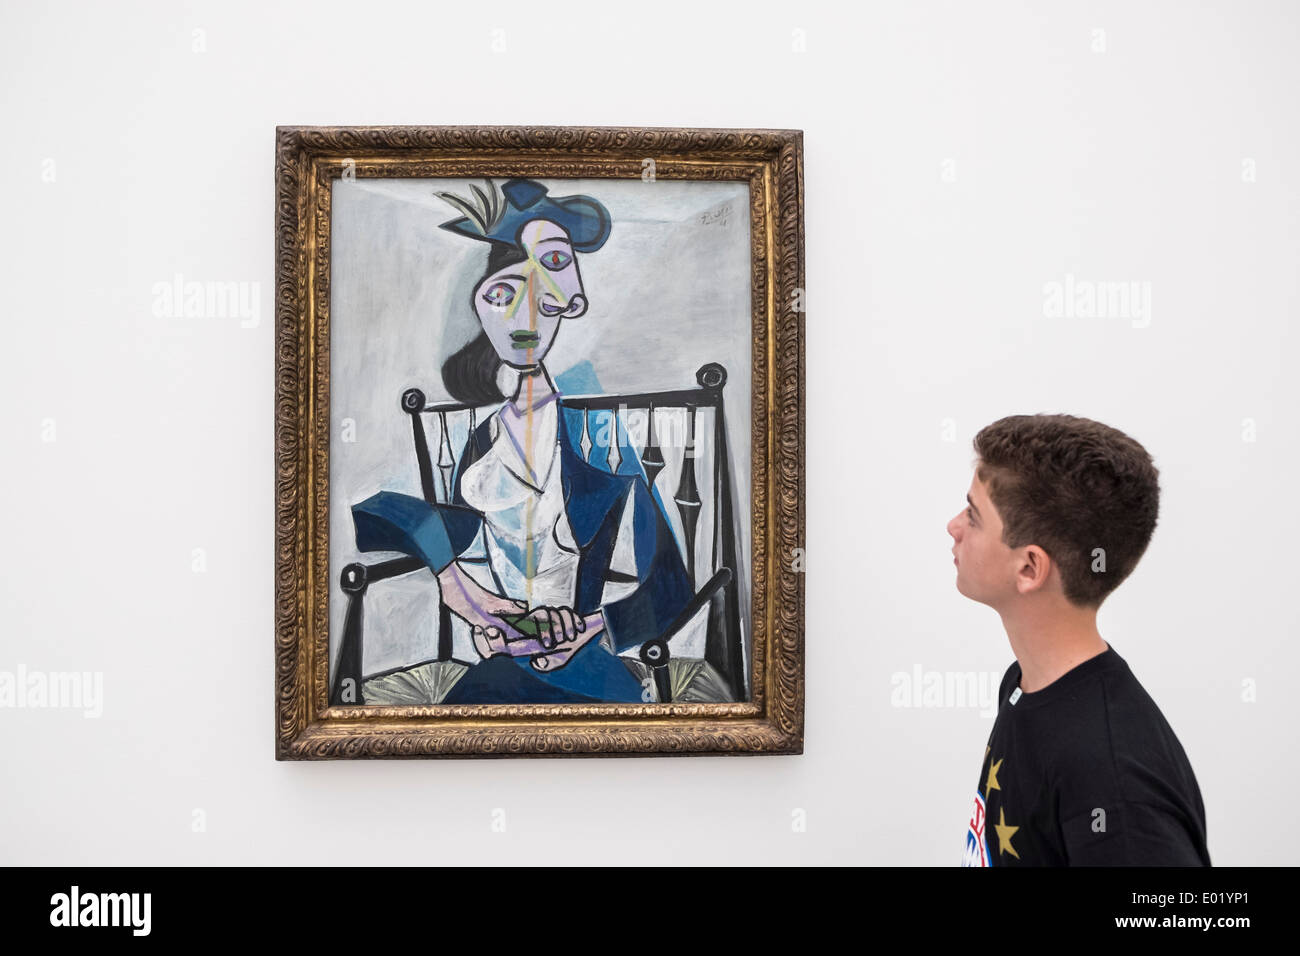 Boy looking at painting by Pablo Picasso ' Sitzende Frau, 1941' at Pinakothek Museum in Munich Germany - Stock Image